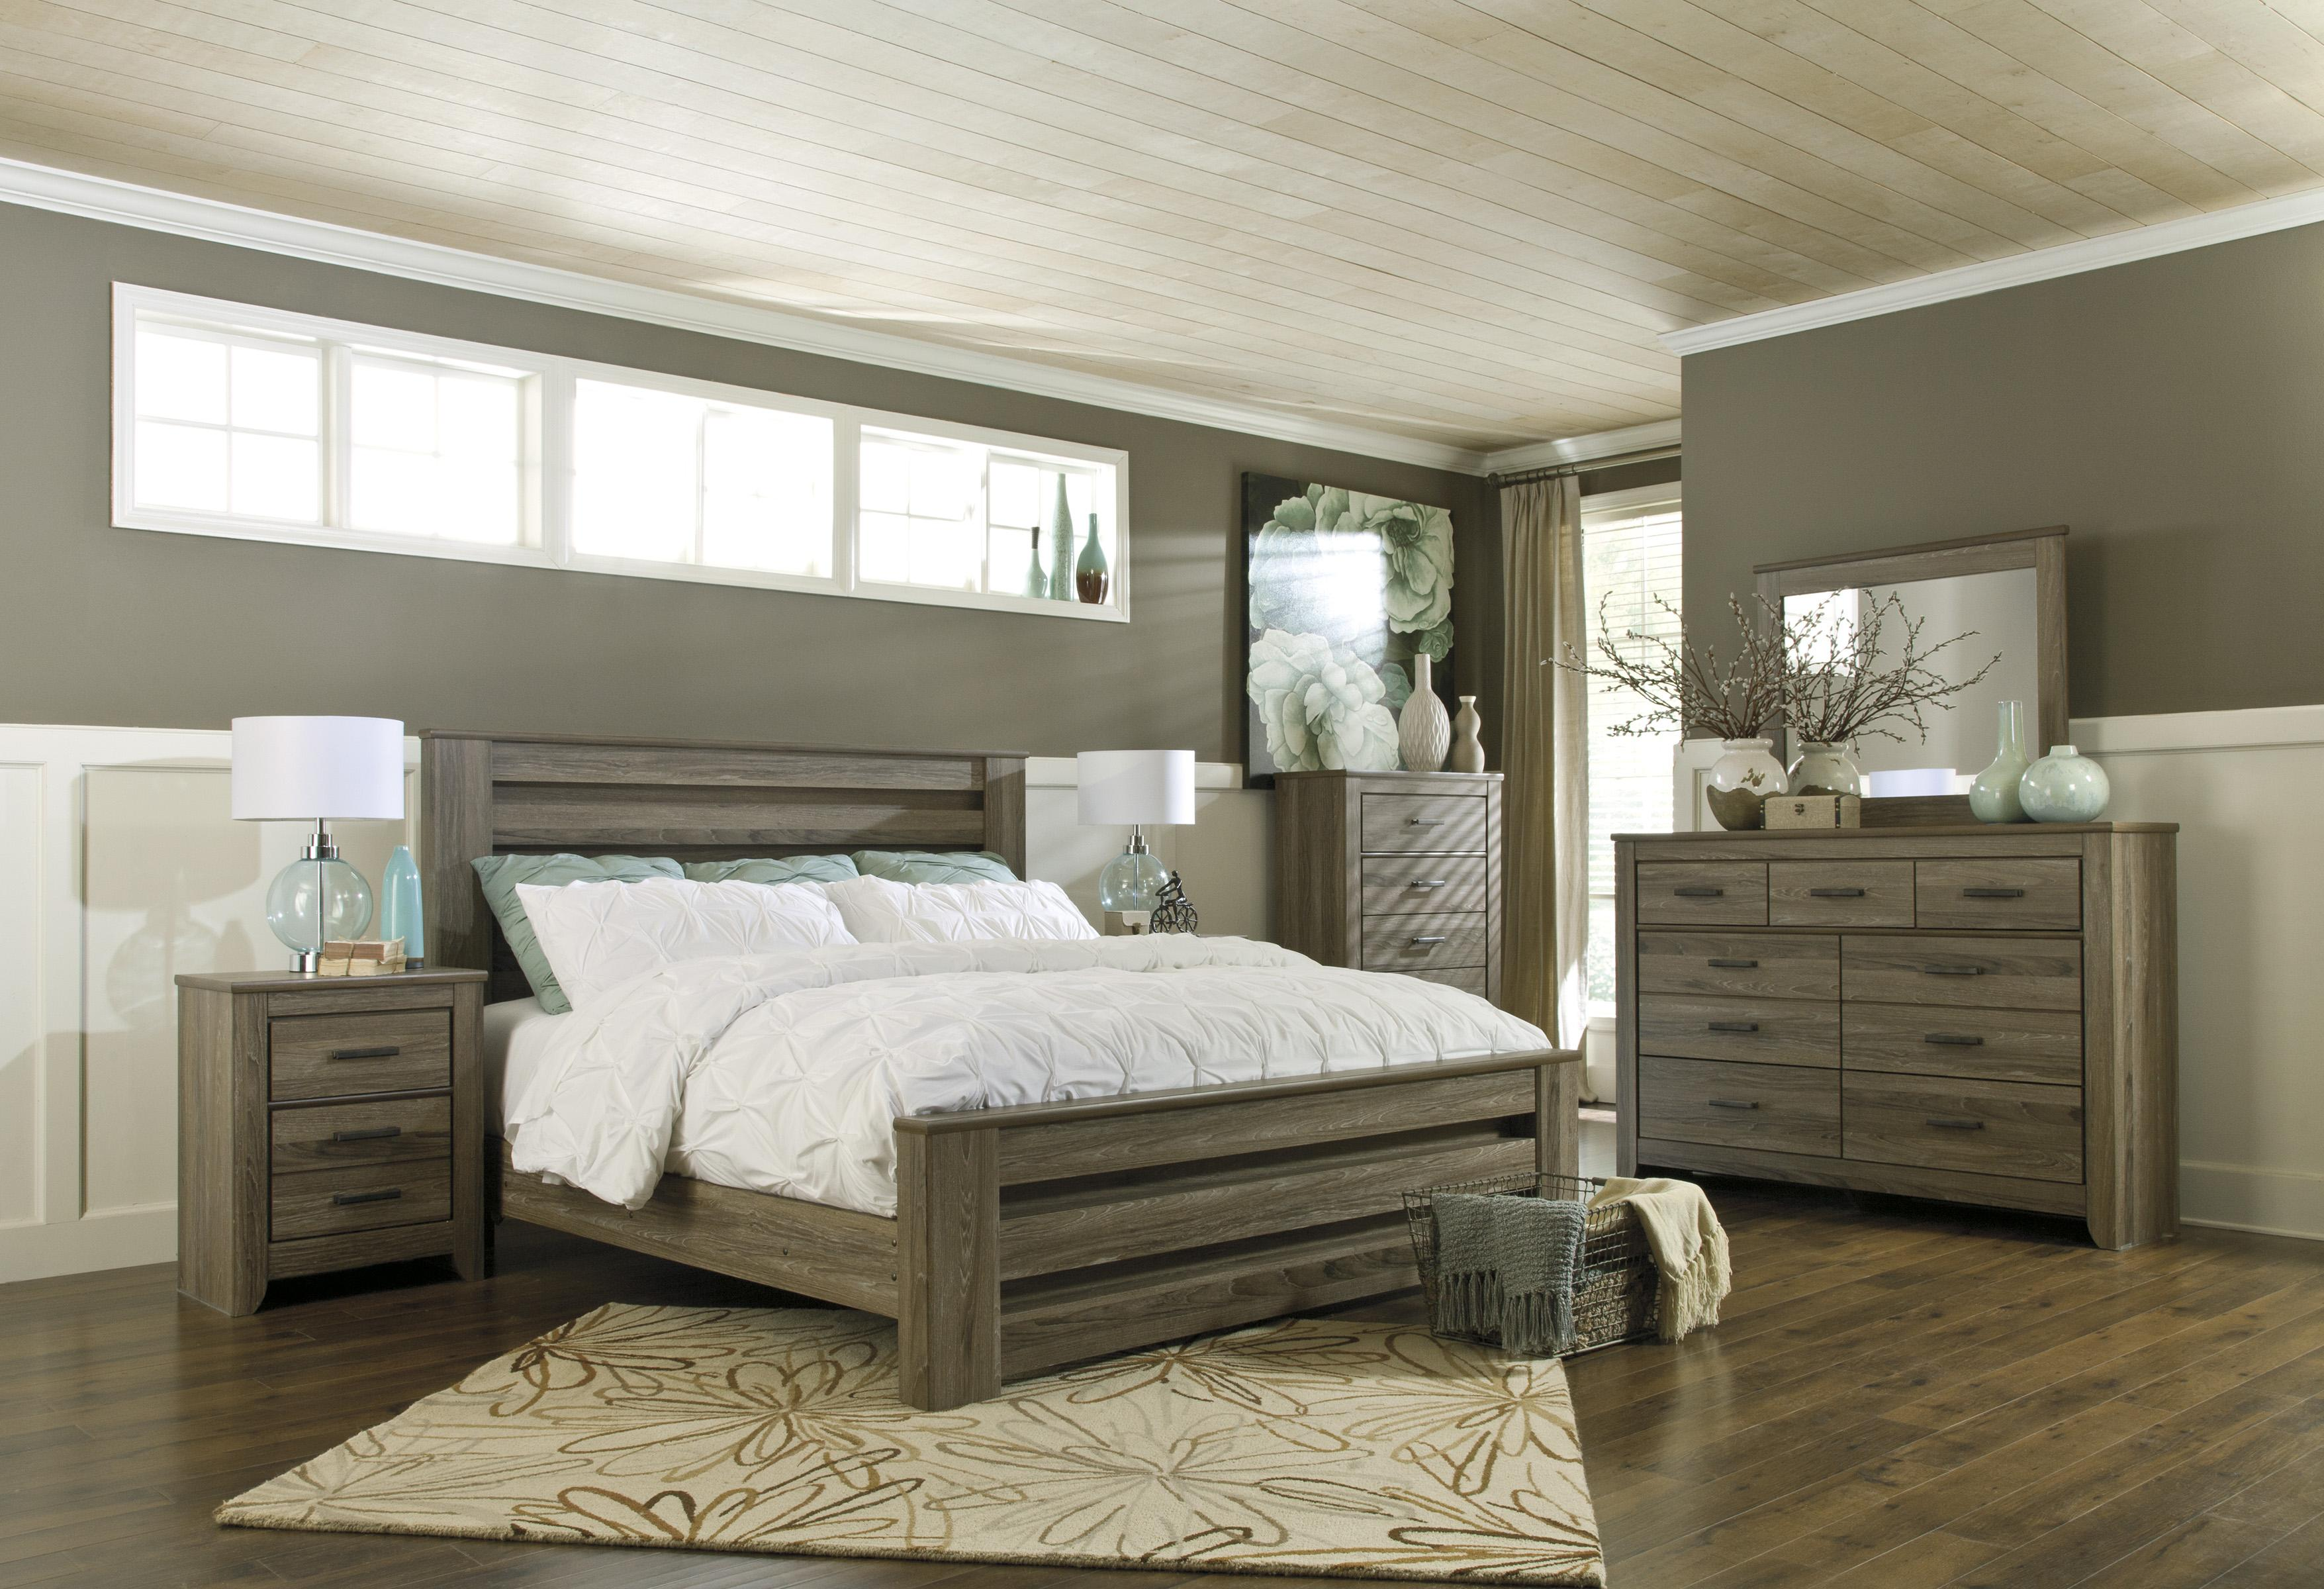 Zelen King Bedroom Group by Signature Design by Ashley at Zak's Warehouse Clearance Center